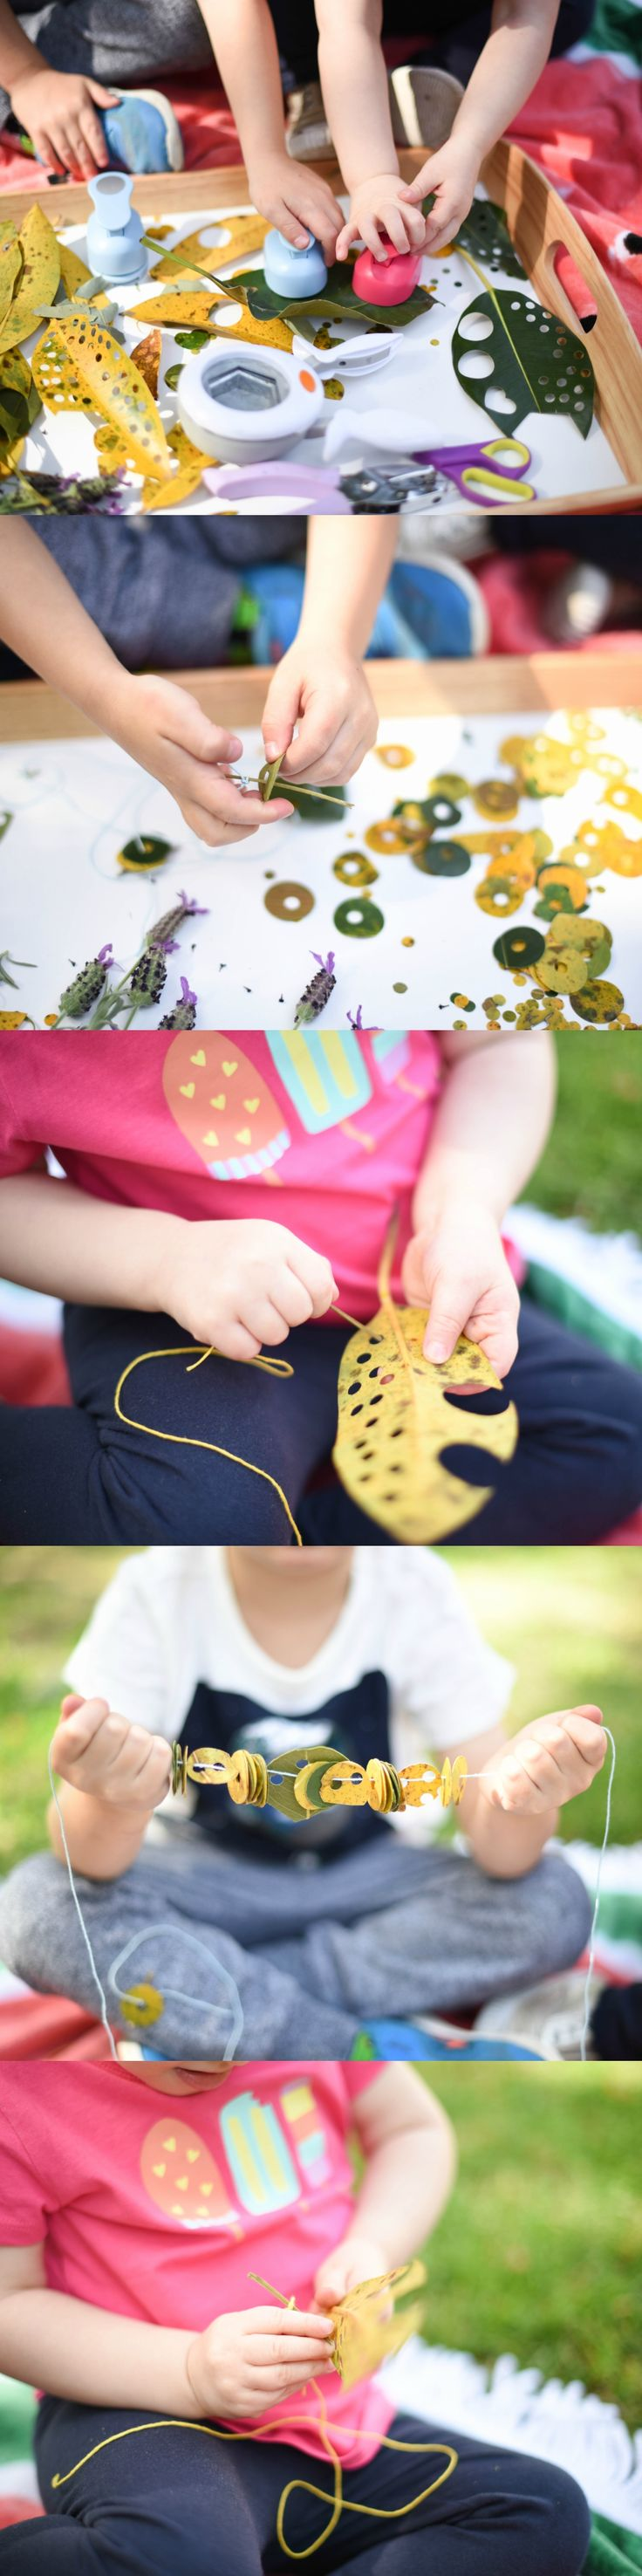 Hole Punch Leaf Threading & Weaving with Nature's Confetti - Outdoor fun for Toddlers & Preschoolers! www.acraftyliving.com